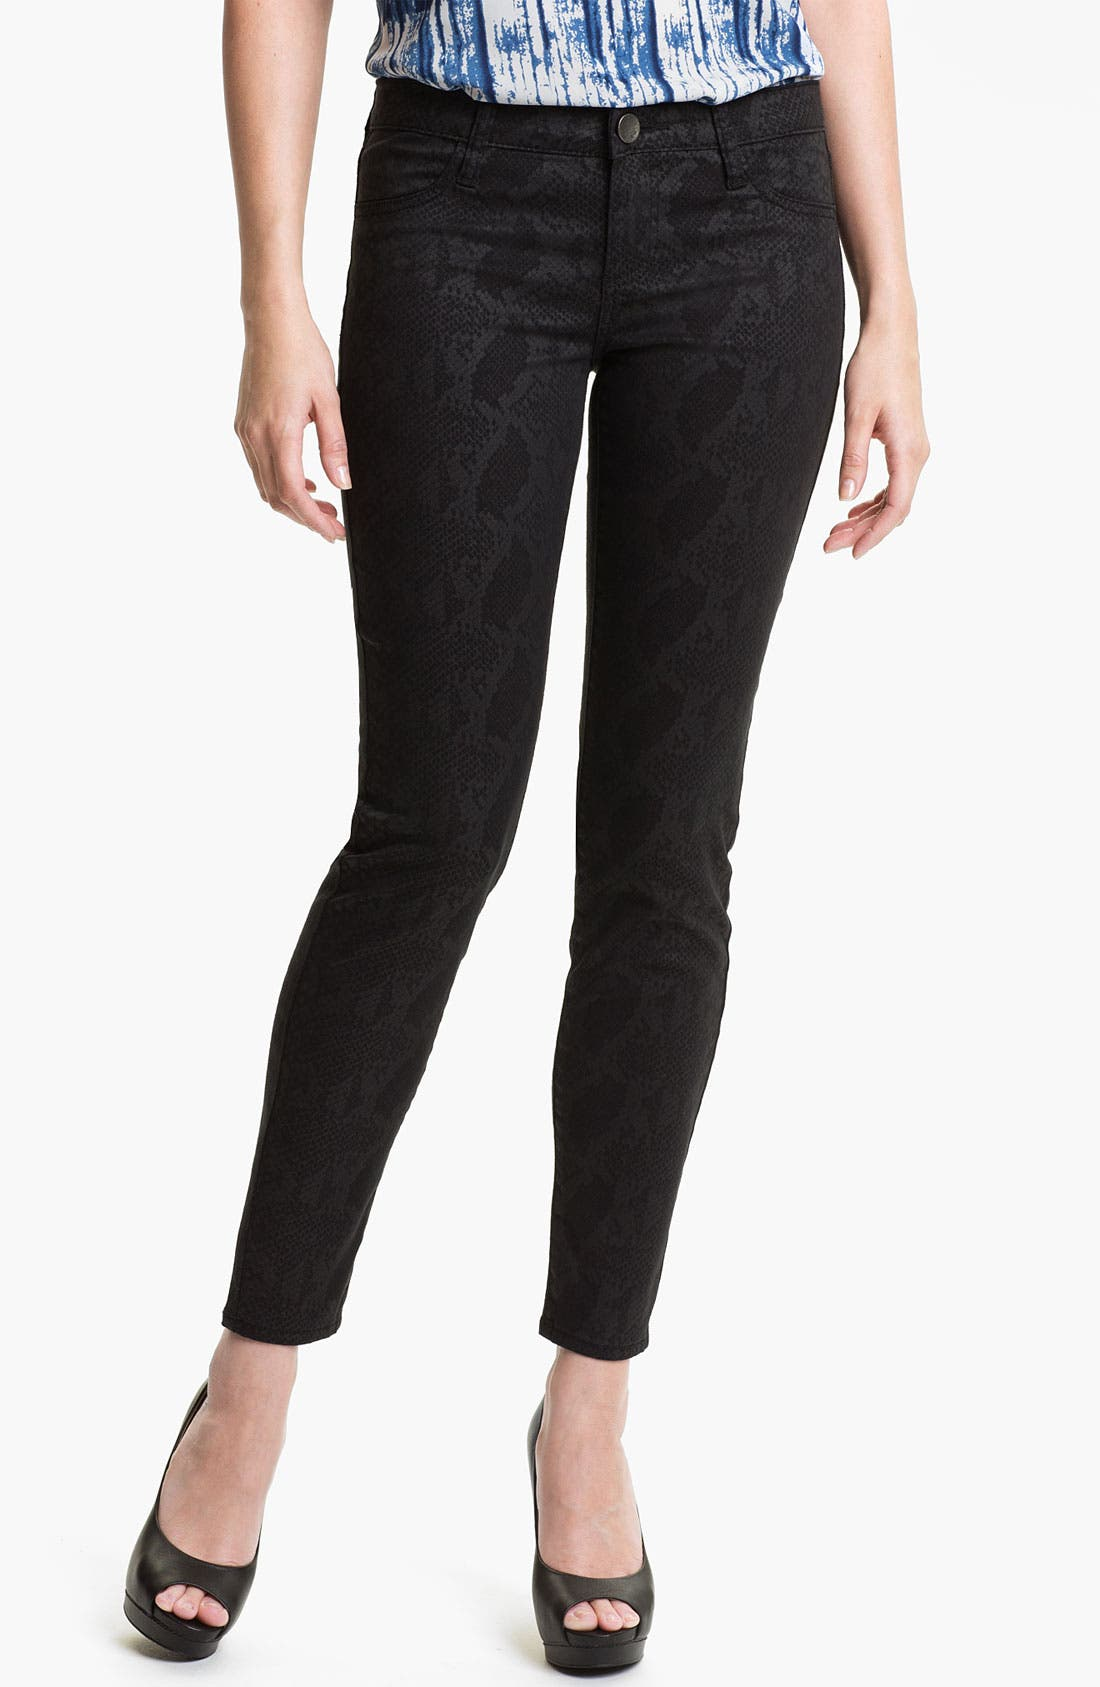 Main Image - KUT from the Kloth 'Jennifer' Skinny Stretch Jeans (Snakeskin Print) (Online Exclusive)